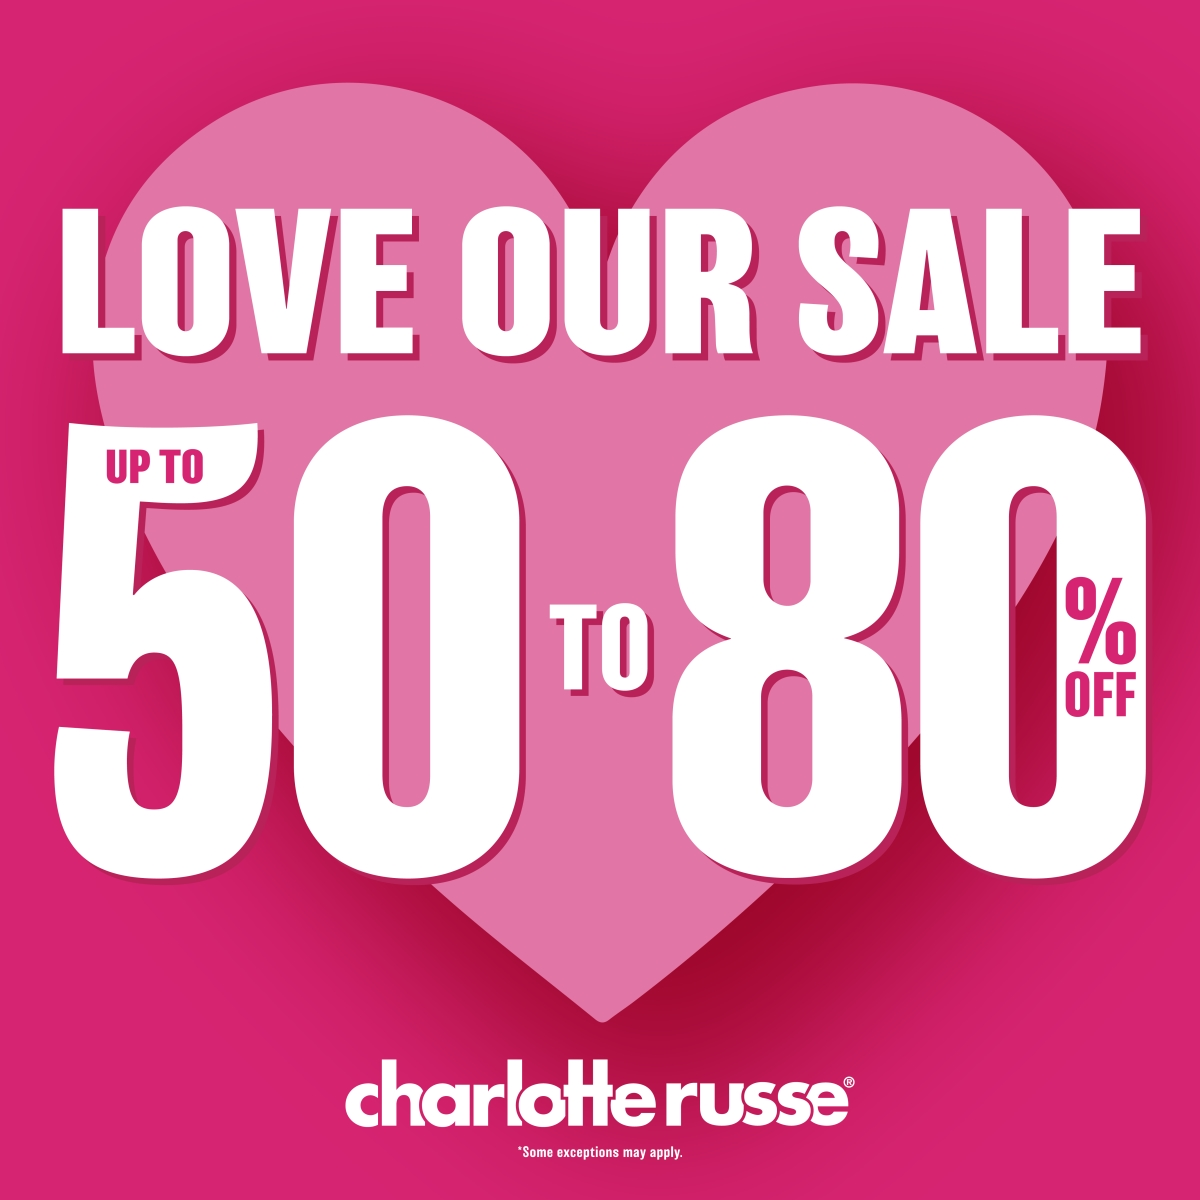 Up to 50-80% Off! from Charlotte Russe